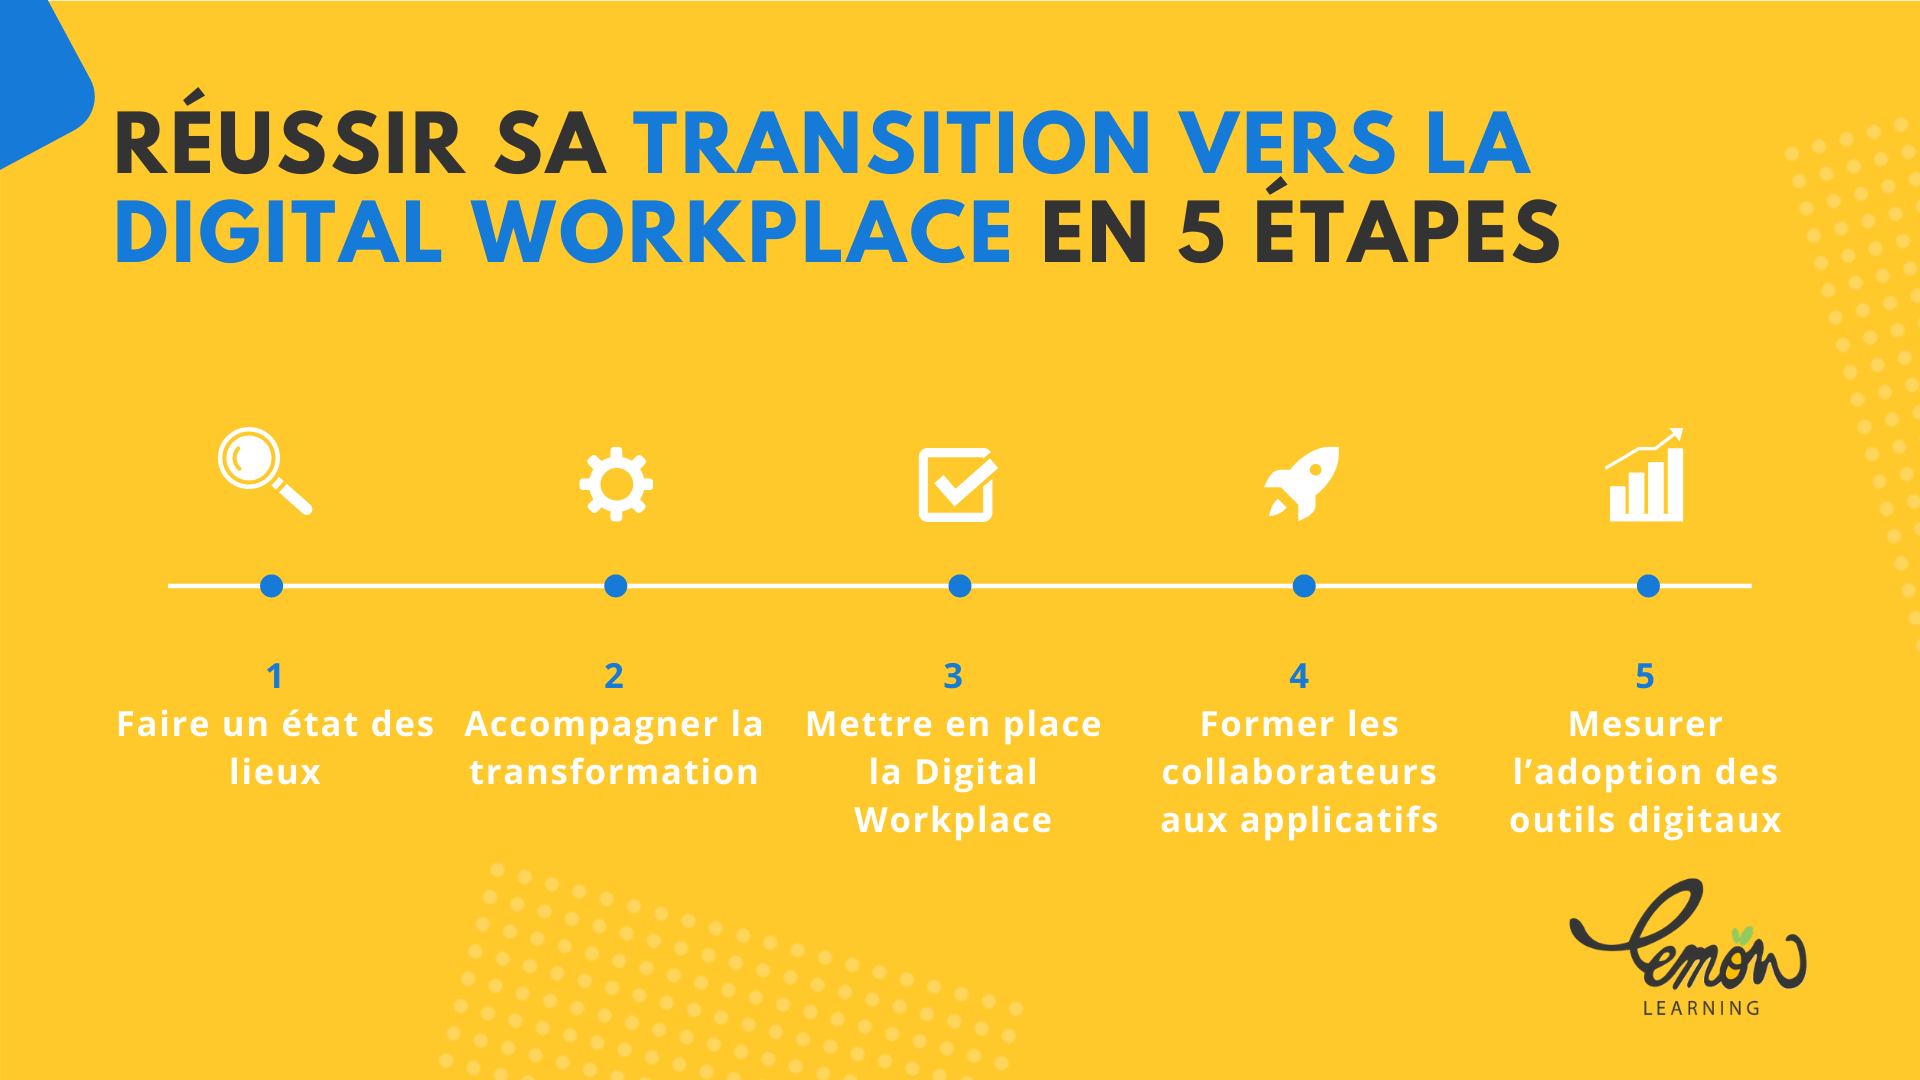 Digital Workplace mettre en place